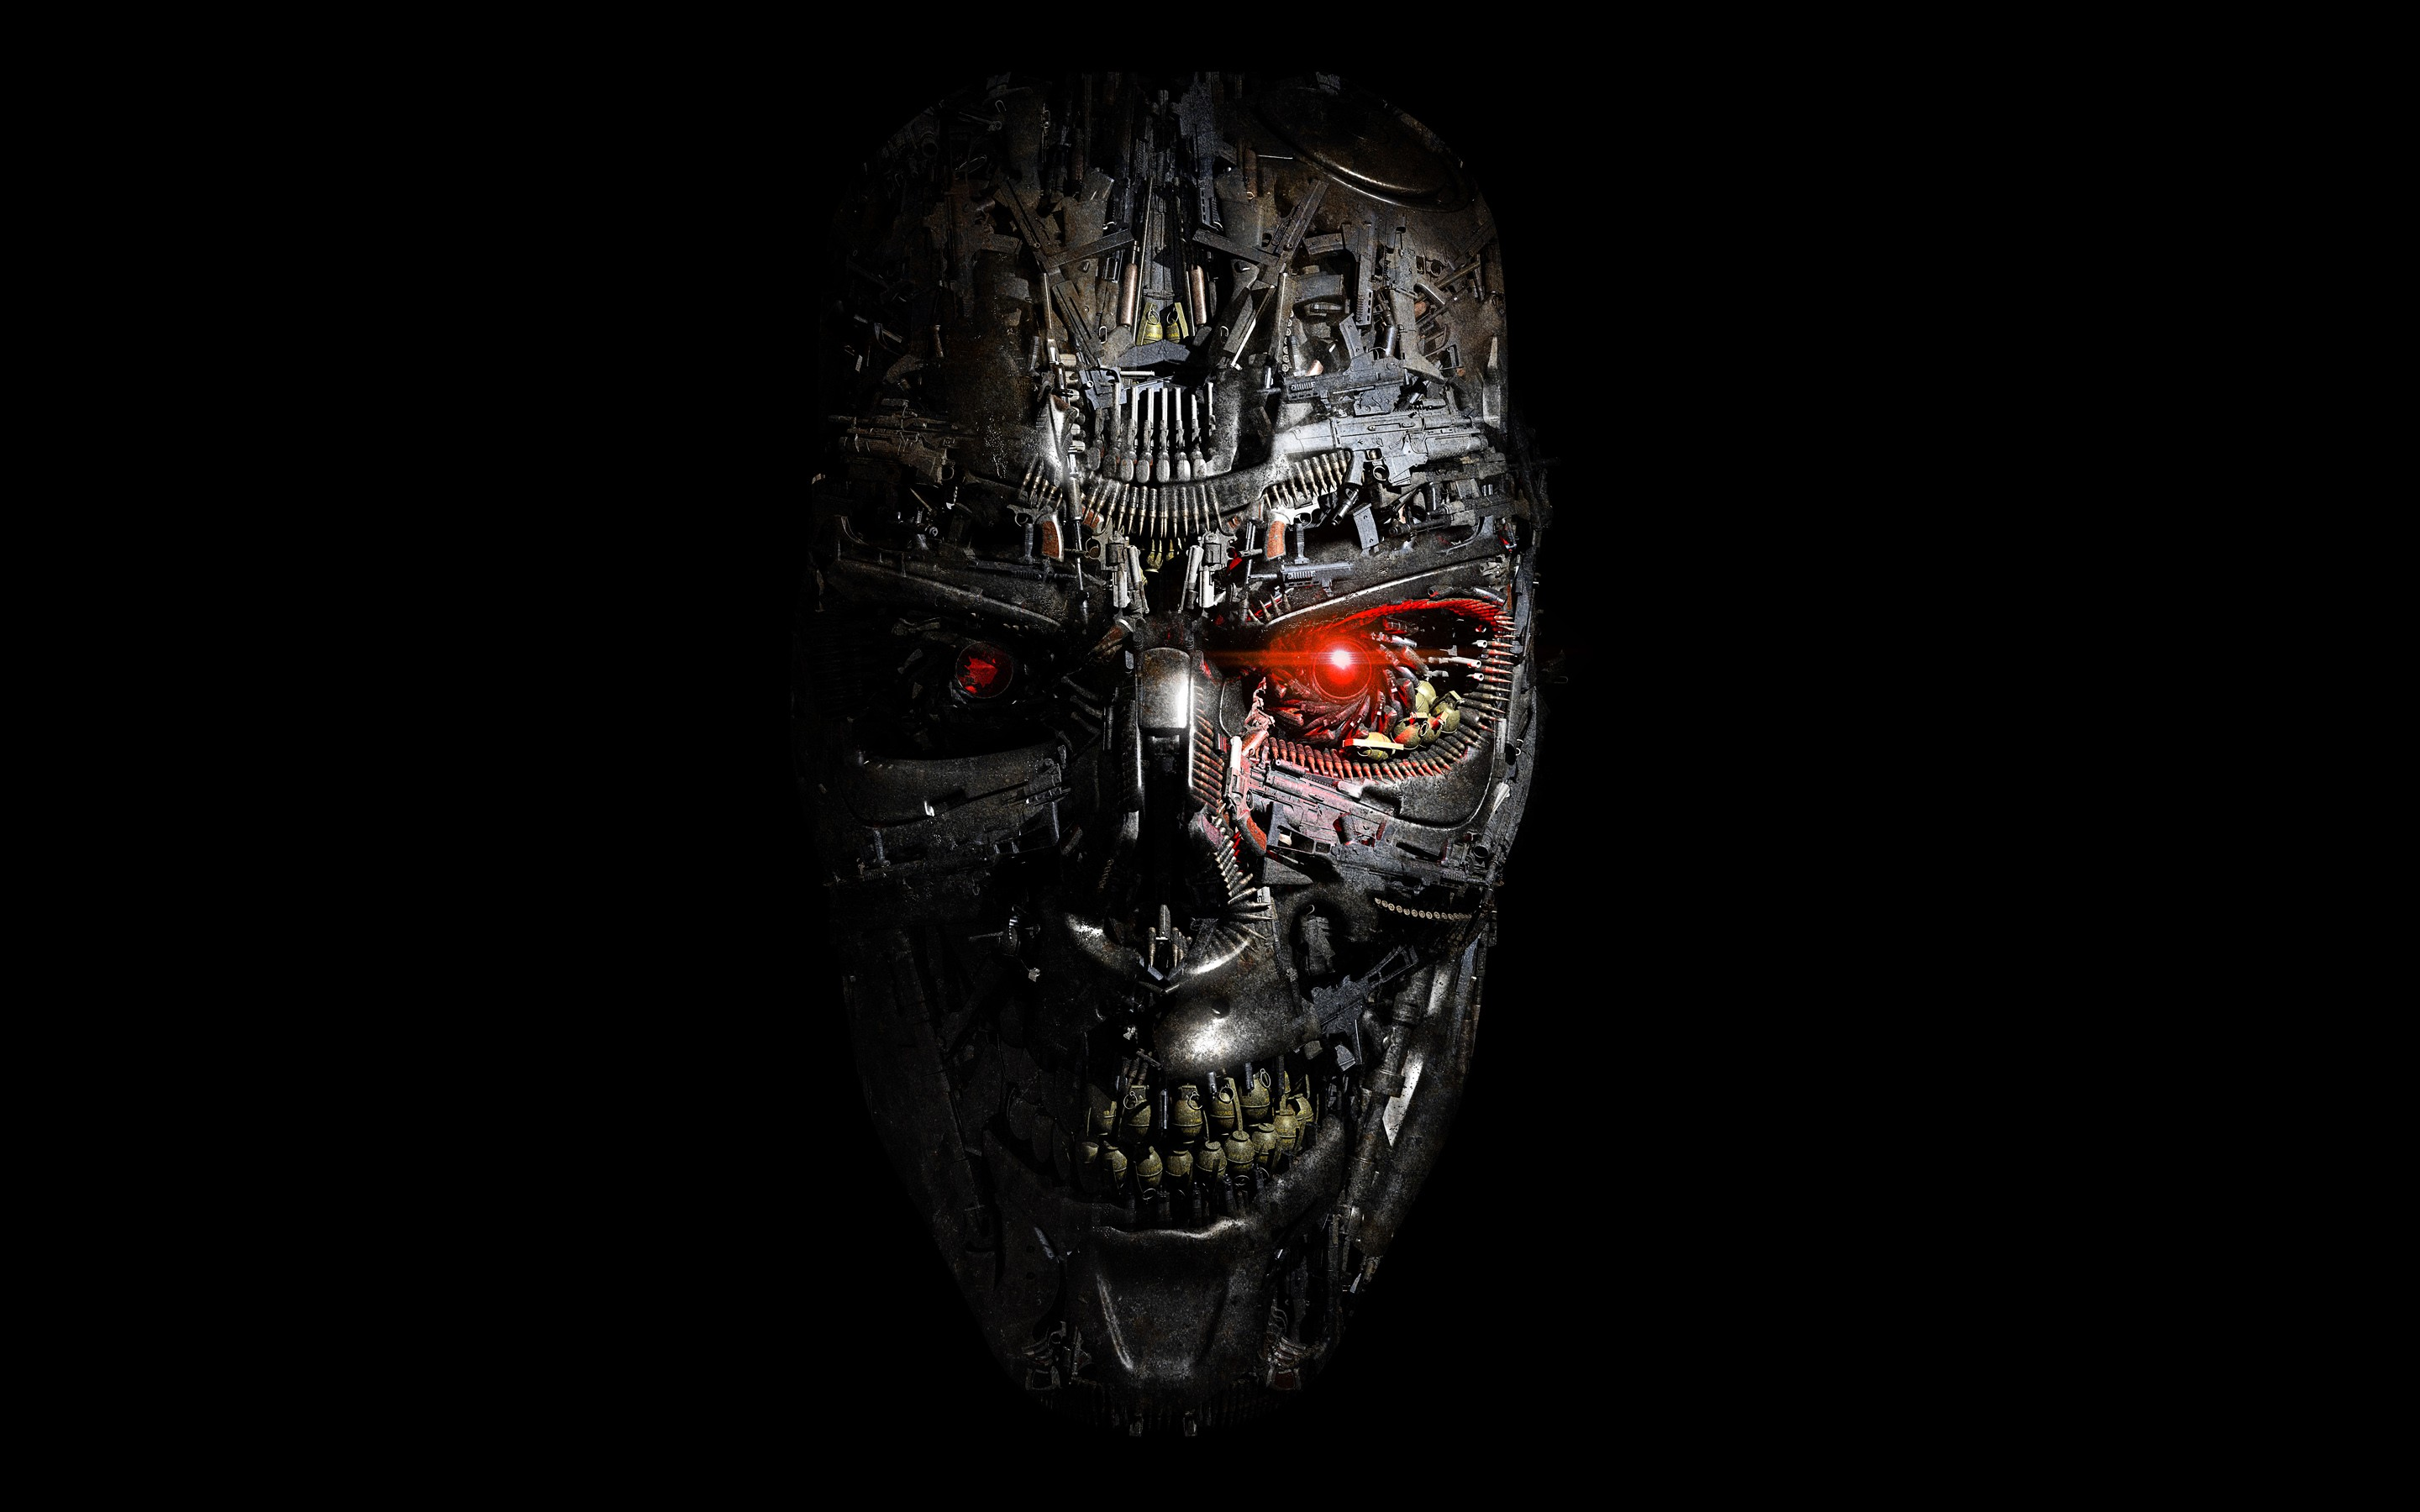 Terminator Genisys Robot HD Movies 4k Wallpapers Images